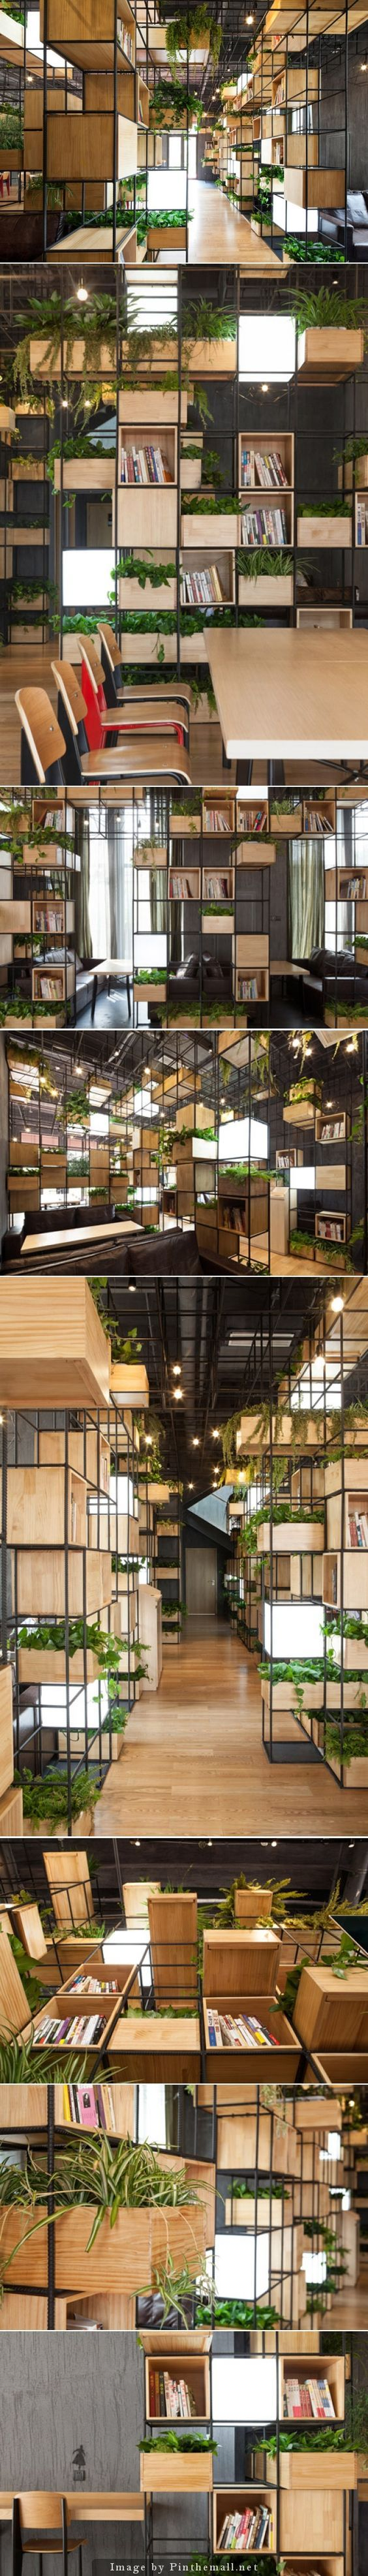 Penda\u0027s indoor planting modules provide a green oasis inside Home ...